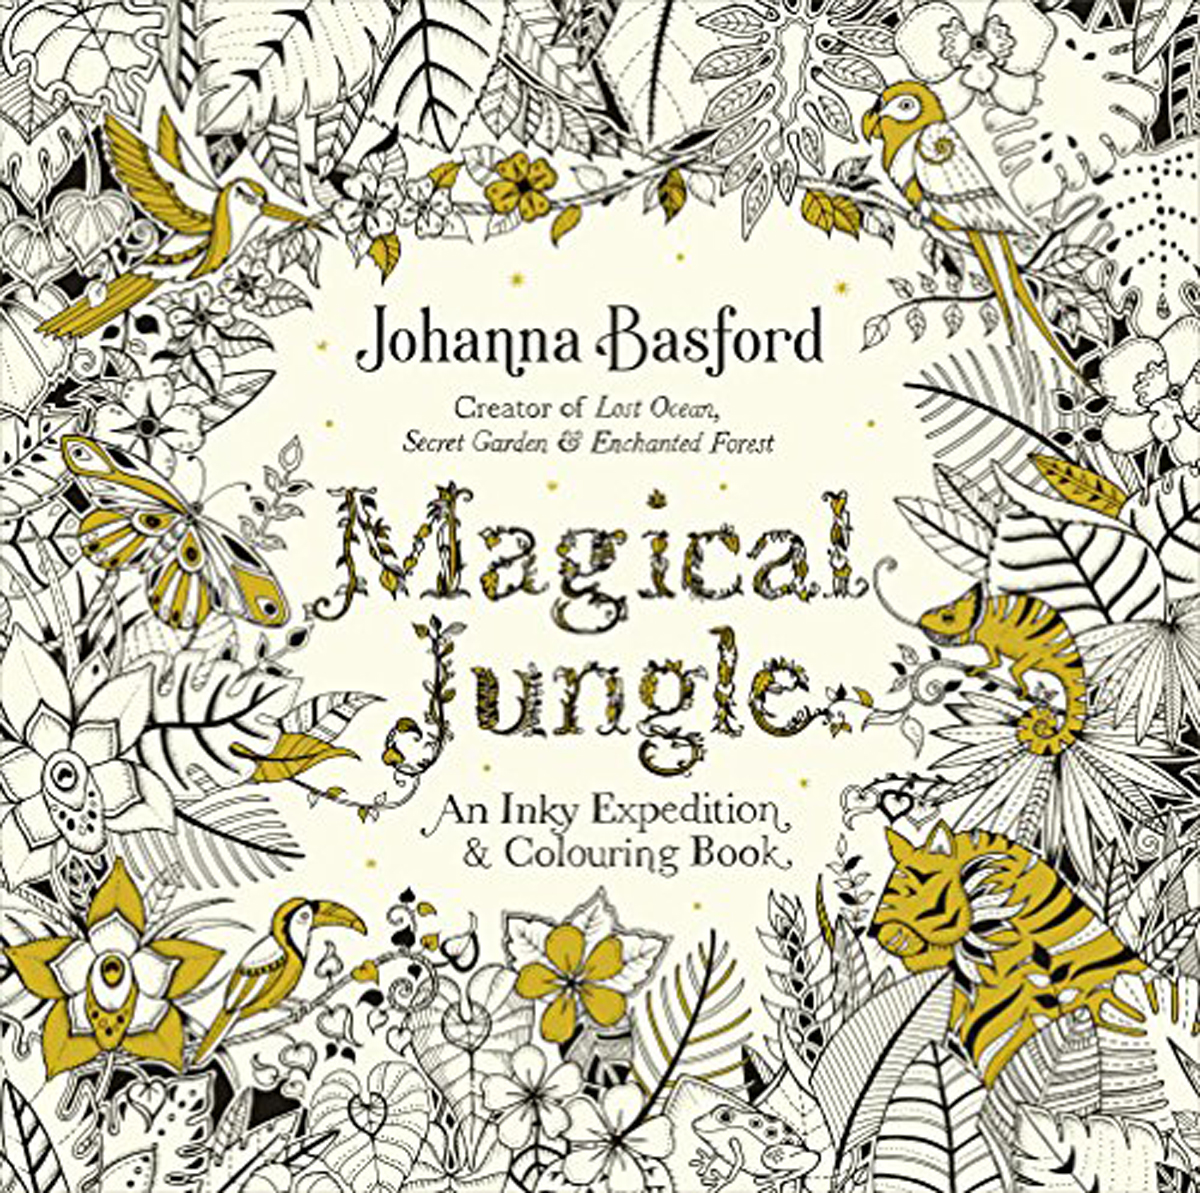 Magical Jungle: An Inky Expedition & Colouring Book colouring book jungle with rub down transfers